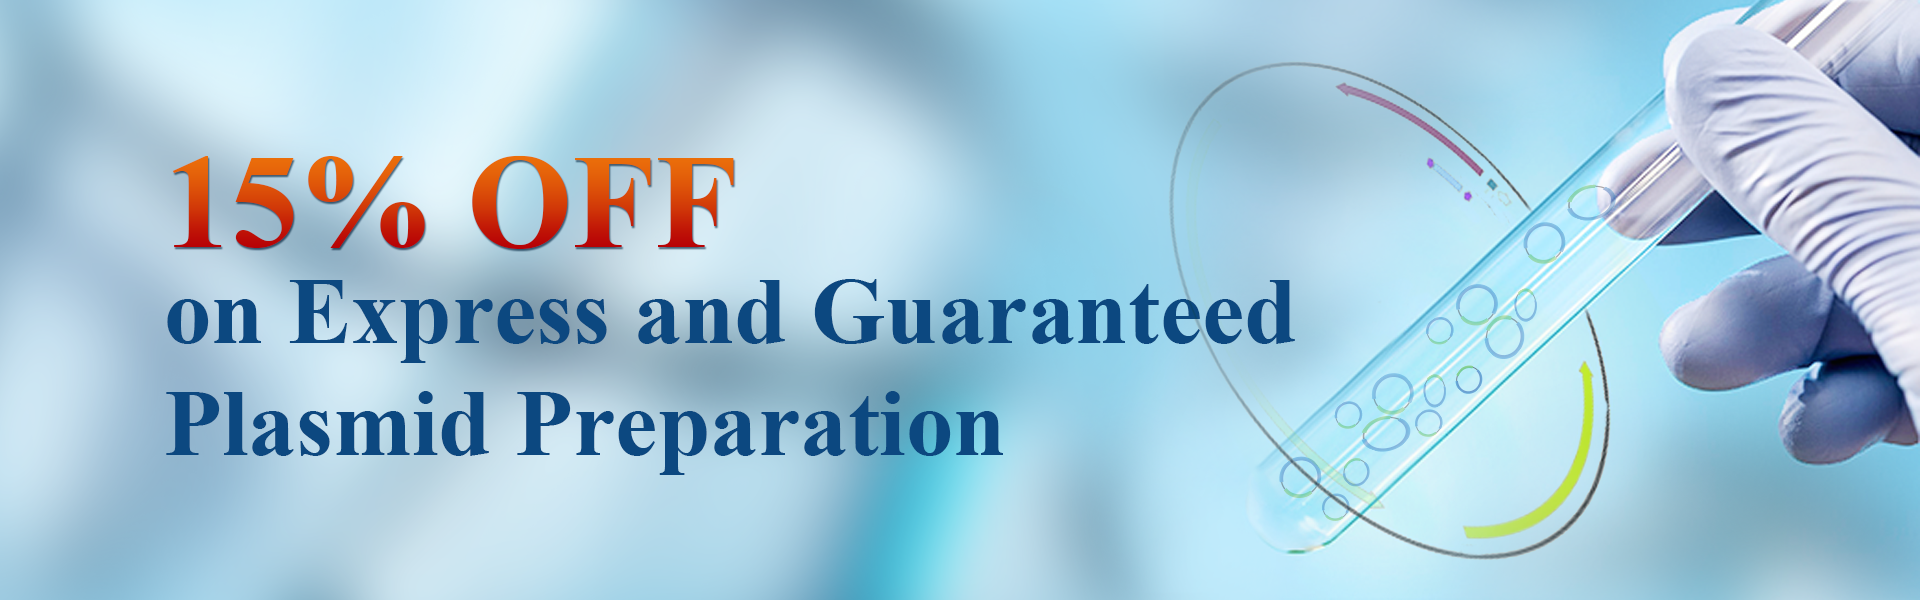 express-and-guaranteed-plasmid-preparation-promotions-1107